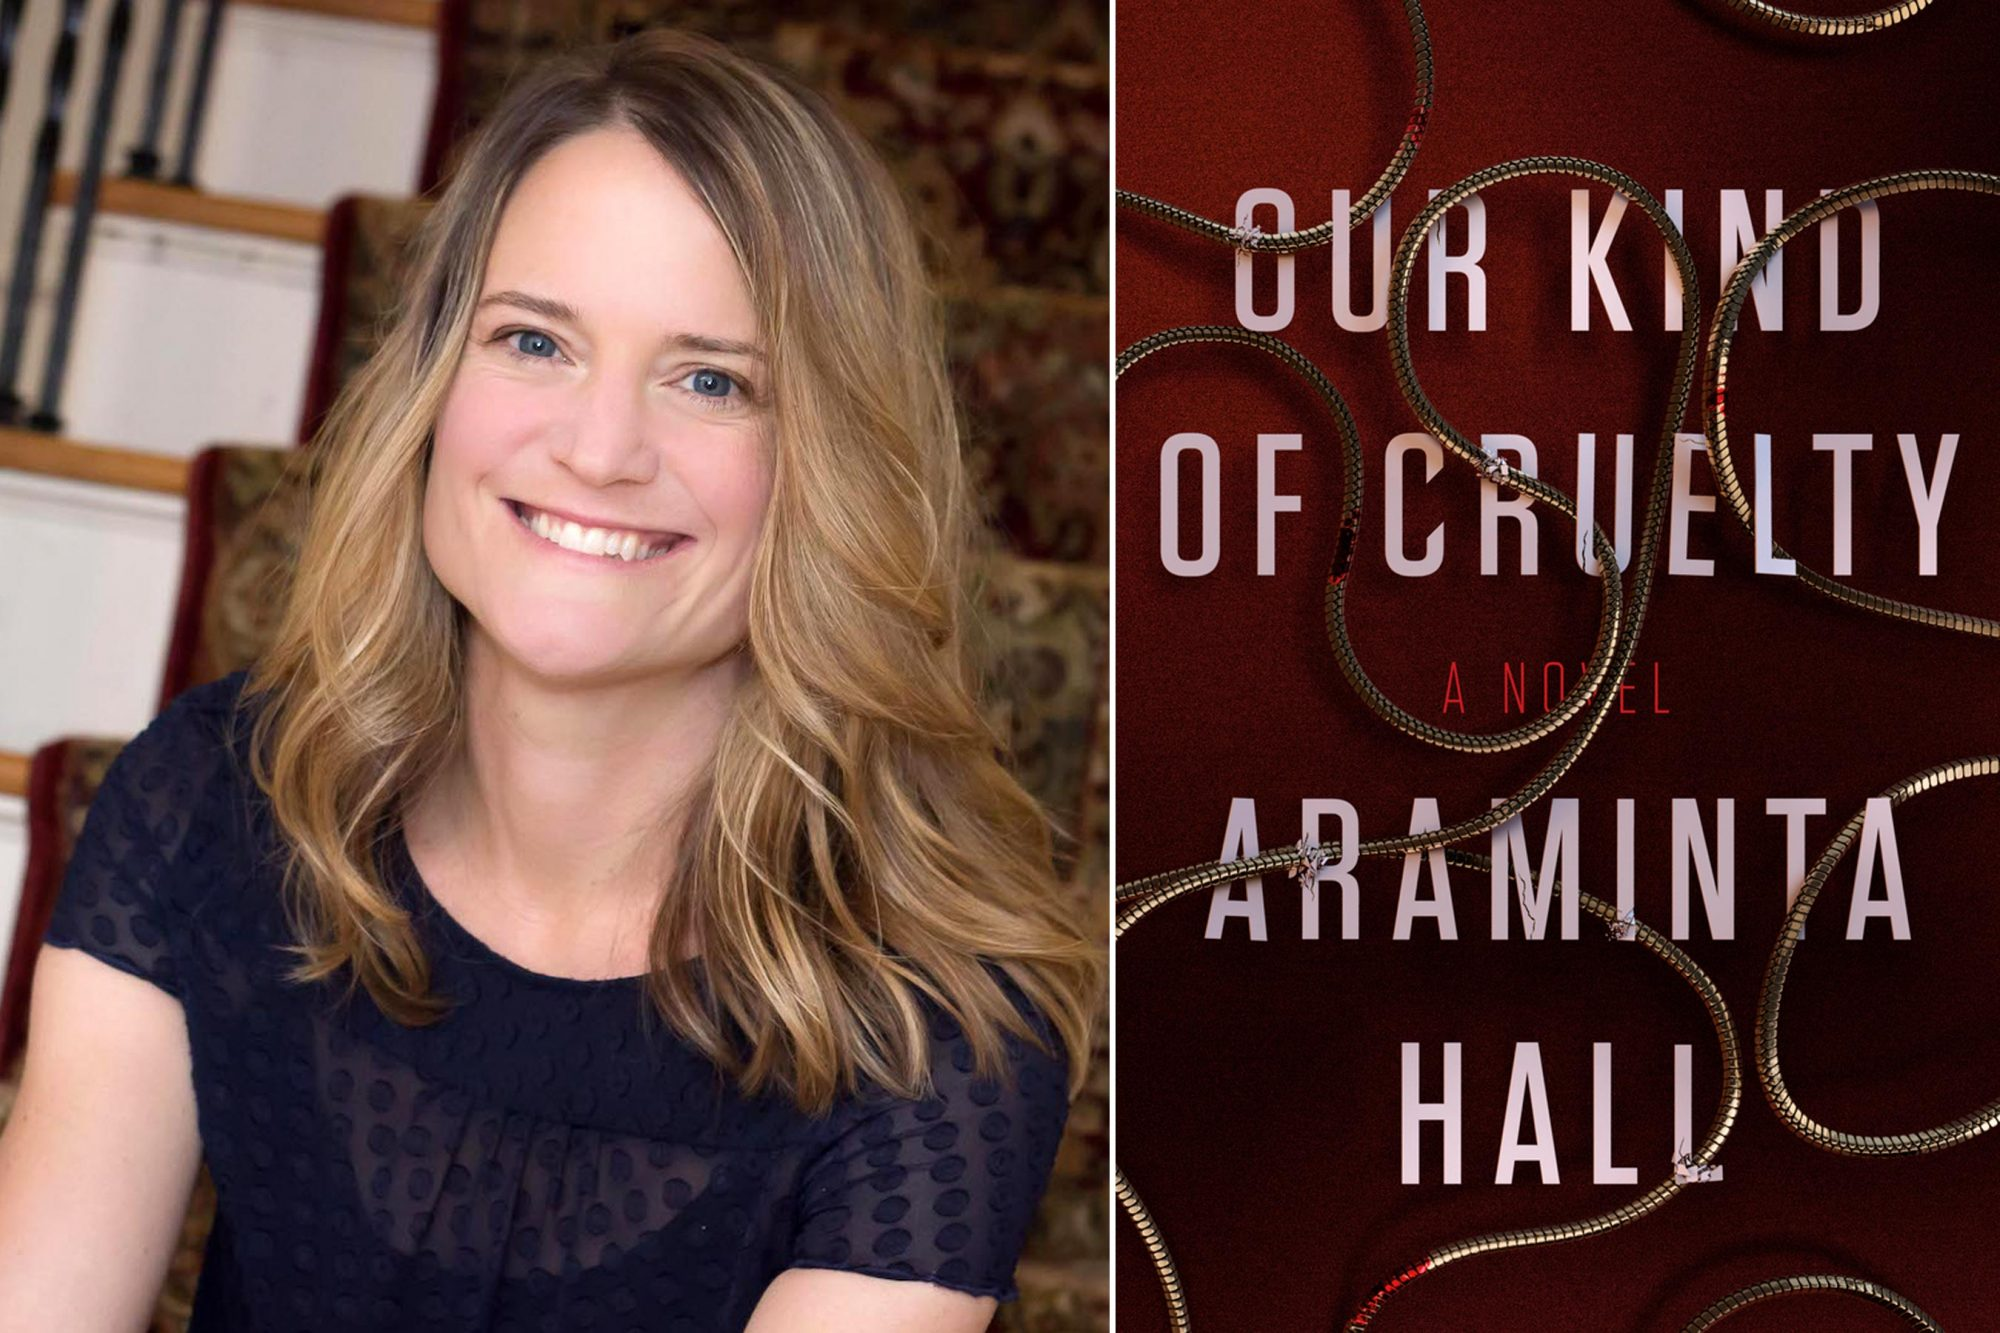 Sara-Shepard-Our-Kind-of-Cruelty